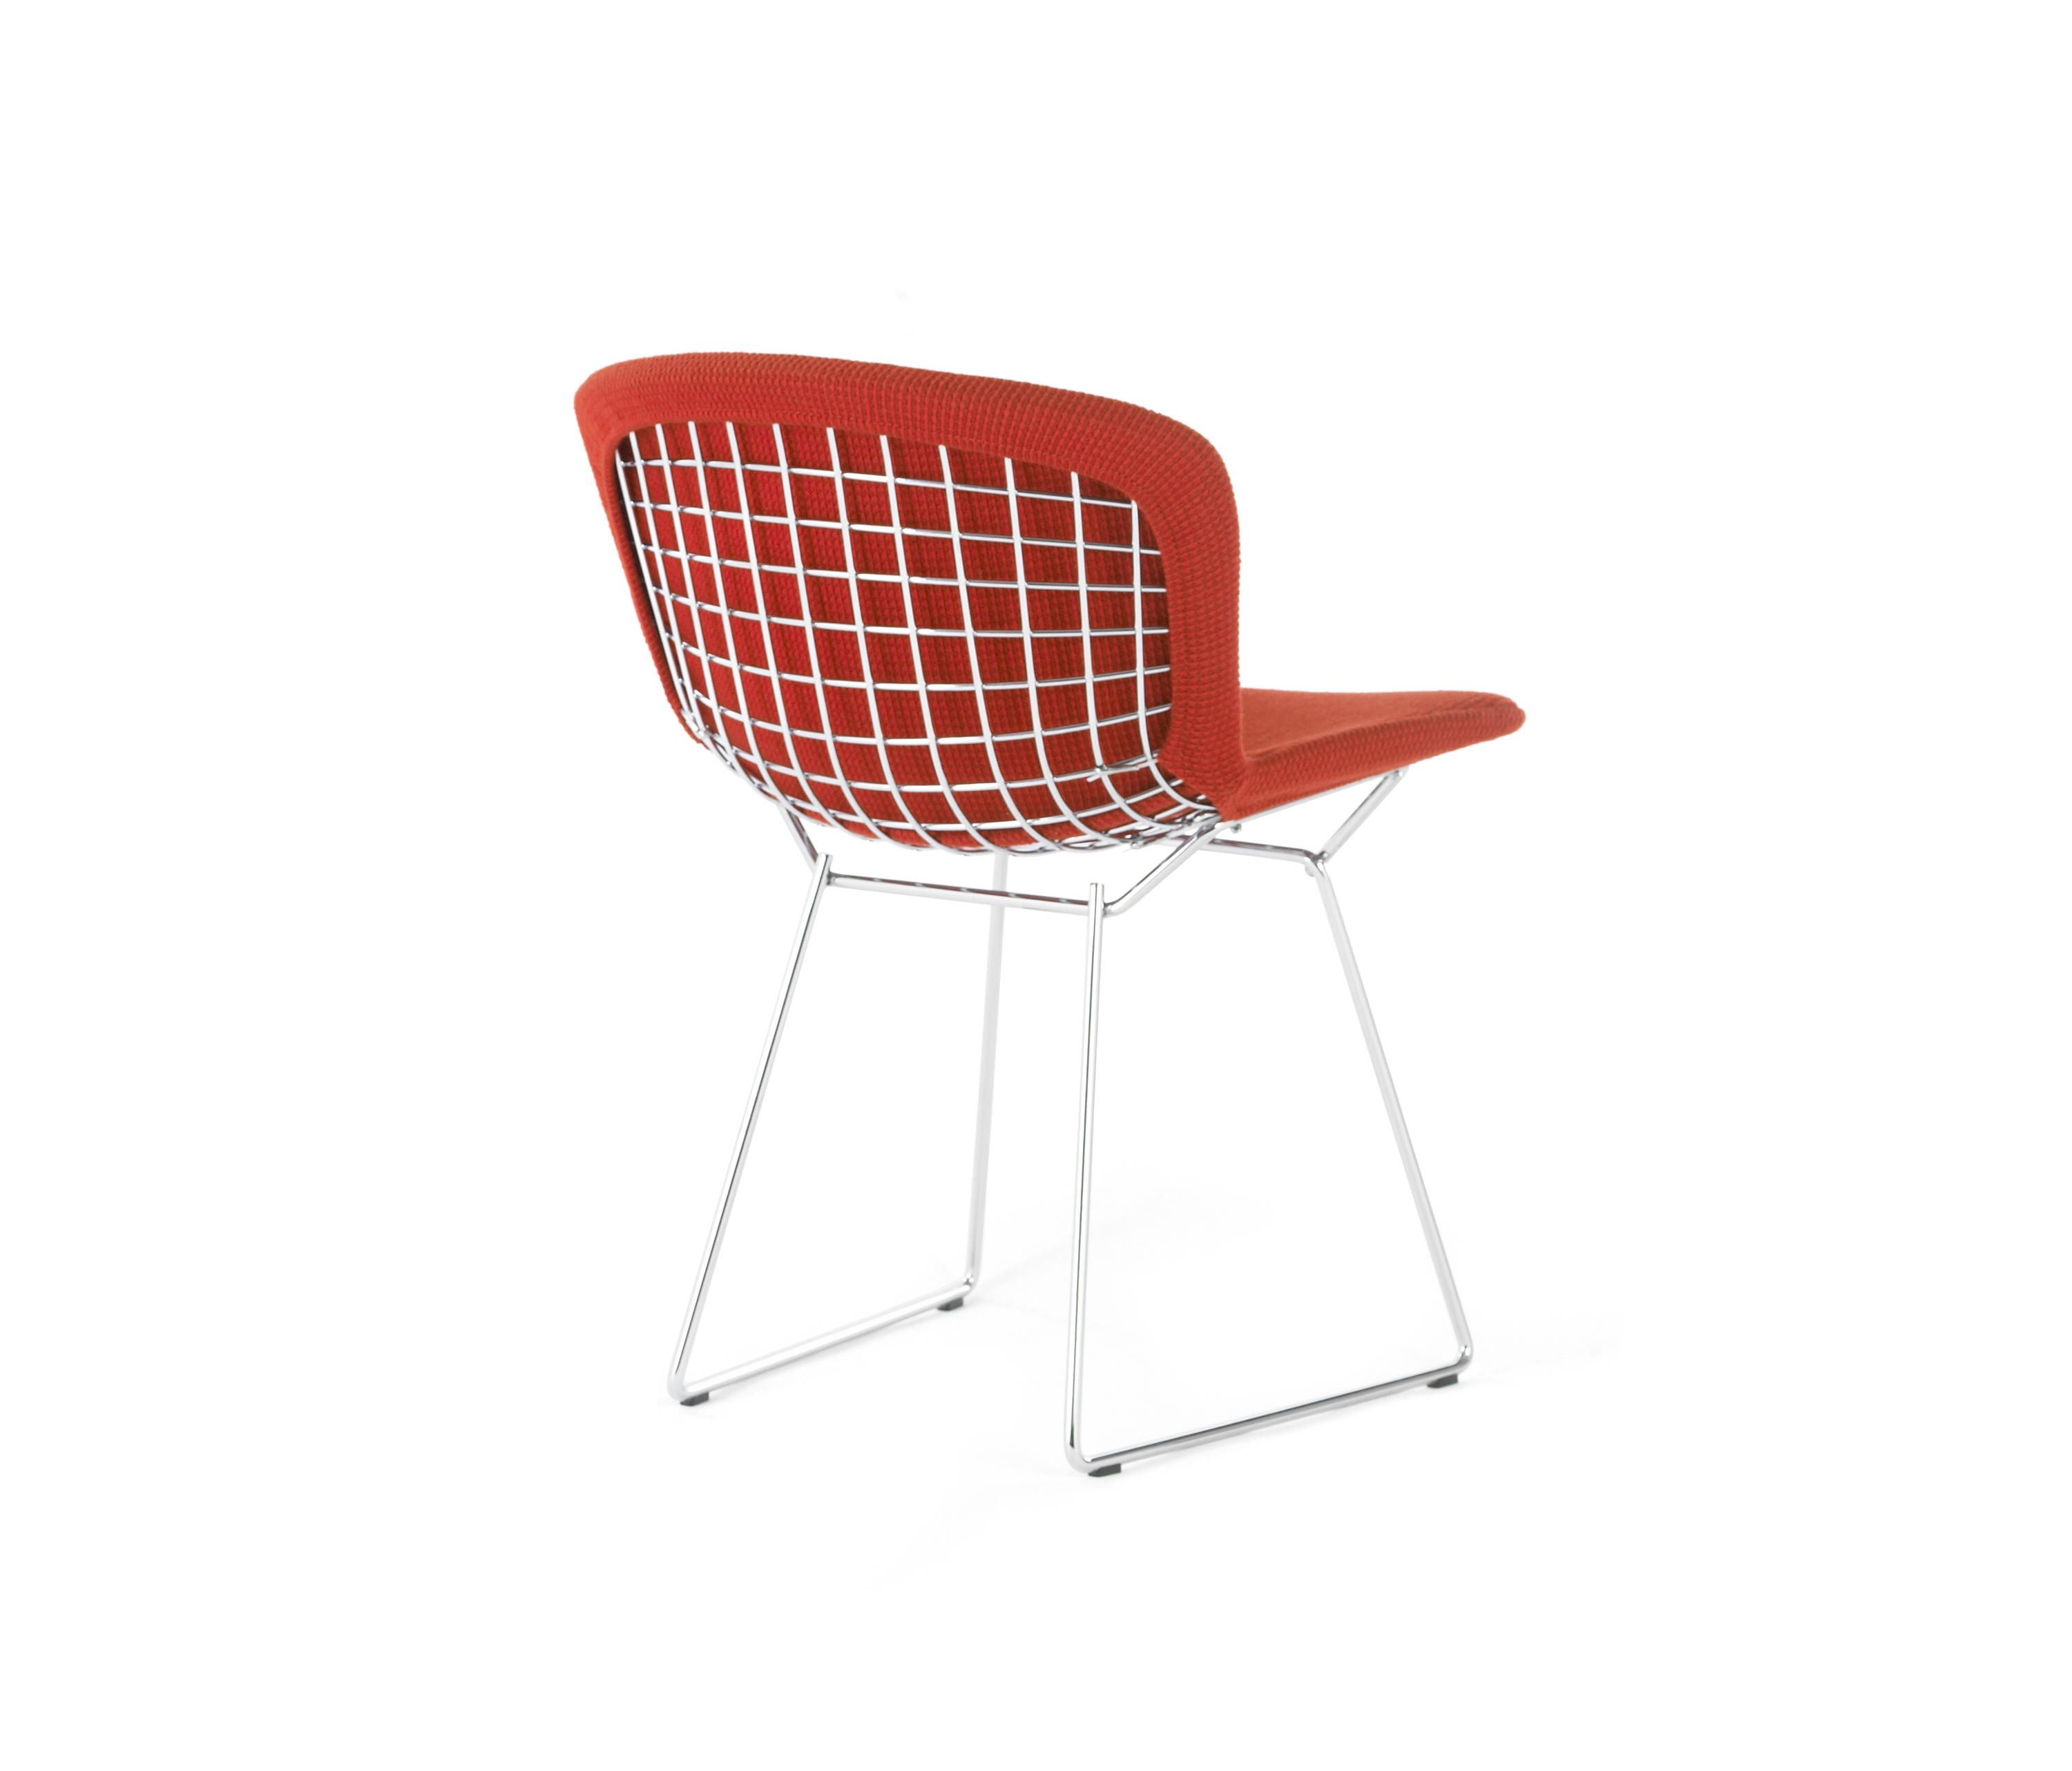 Bertoia side chair visitors chairs side chairs from knoll international architonic - Sedia tulip knoll prezzo ...